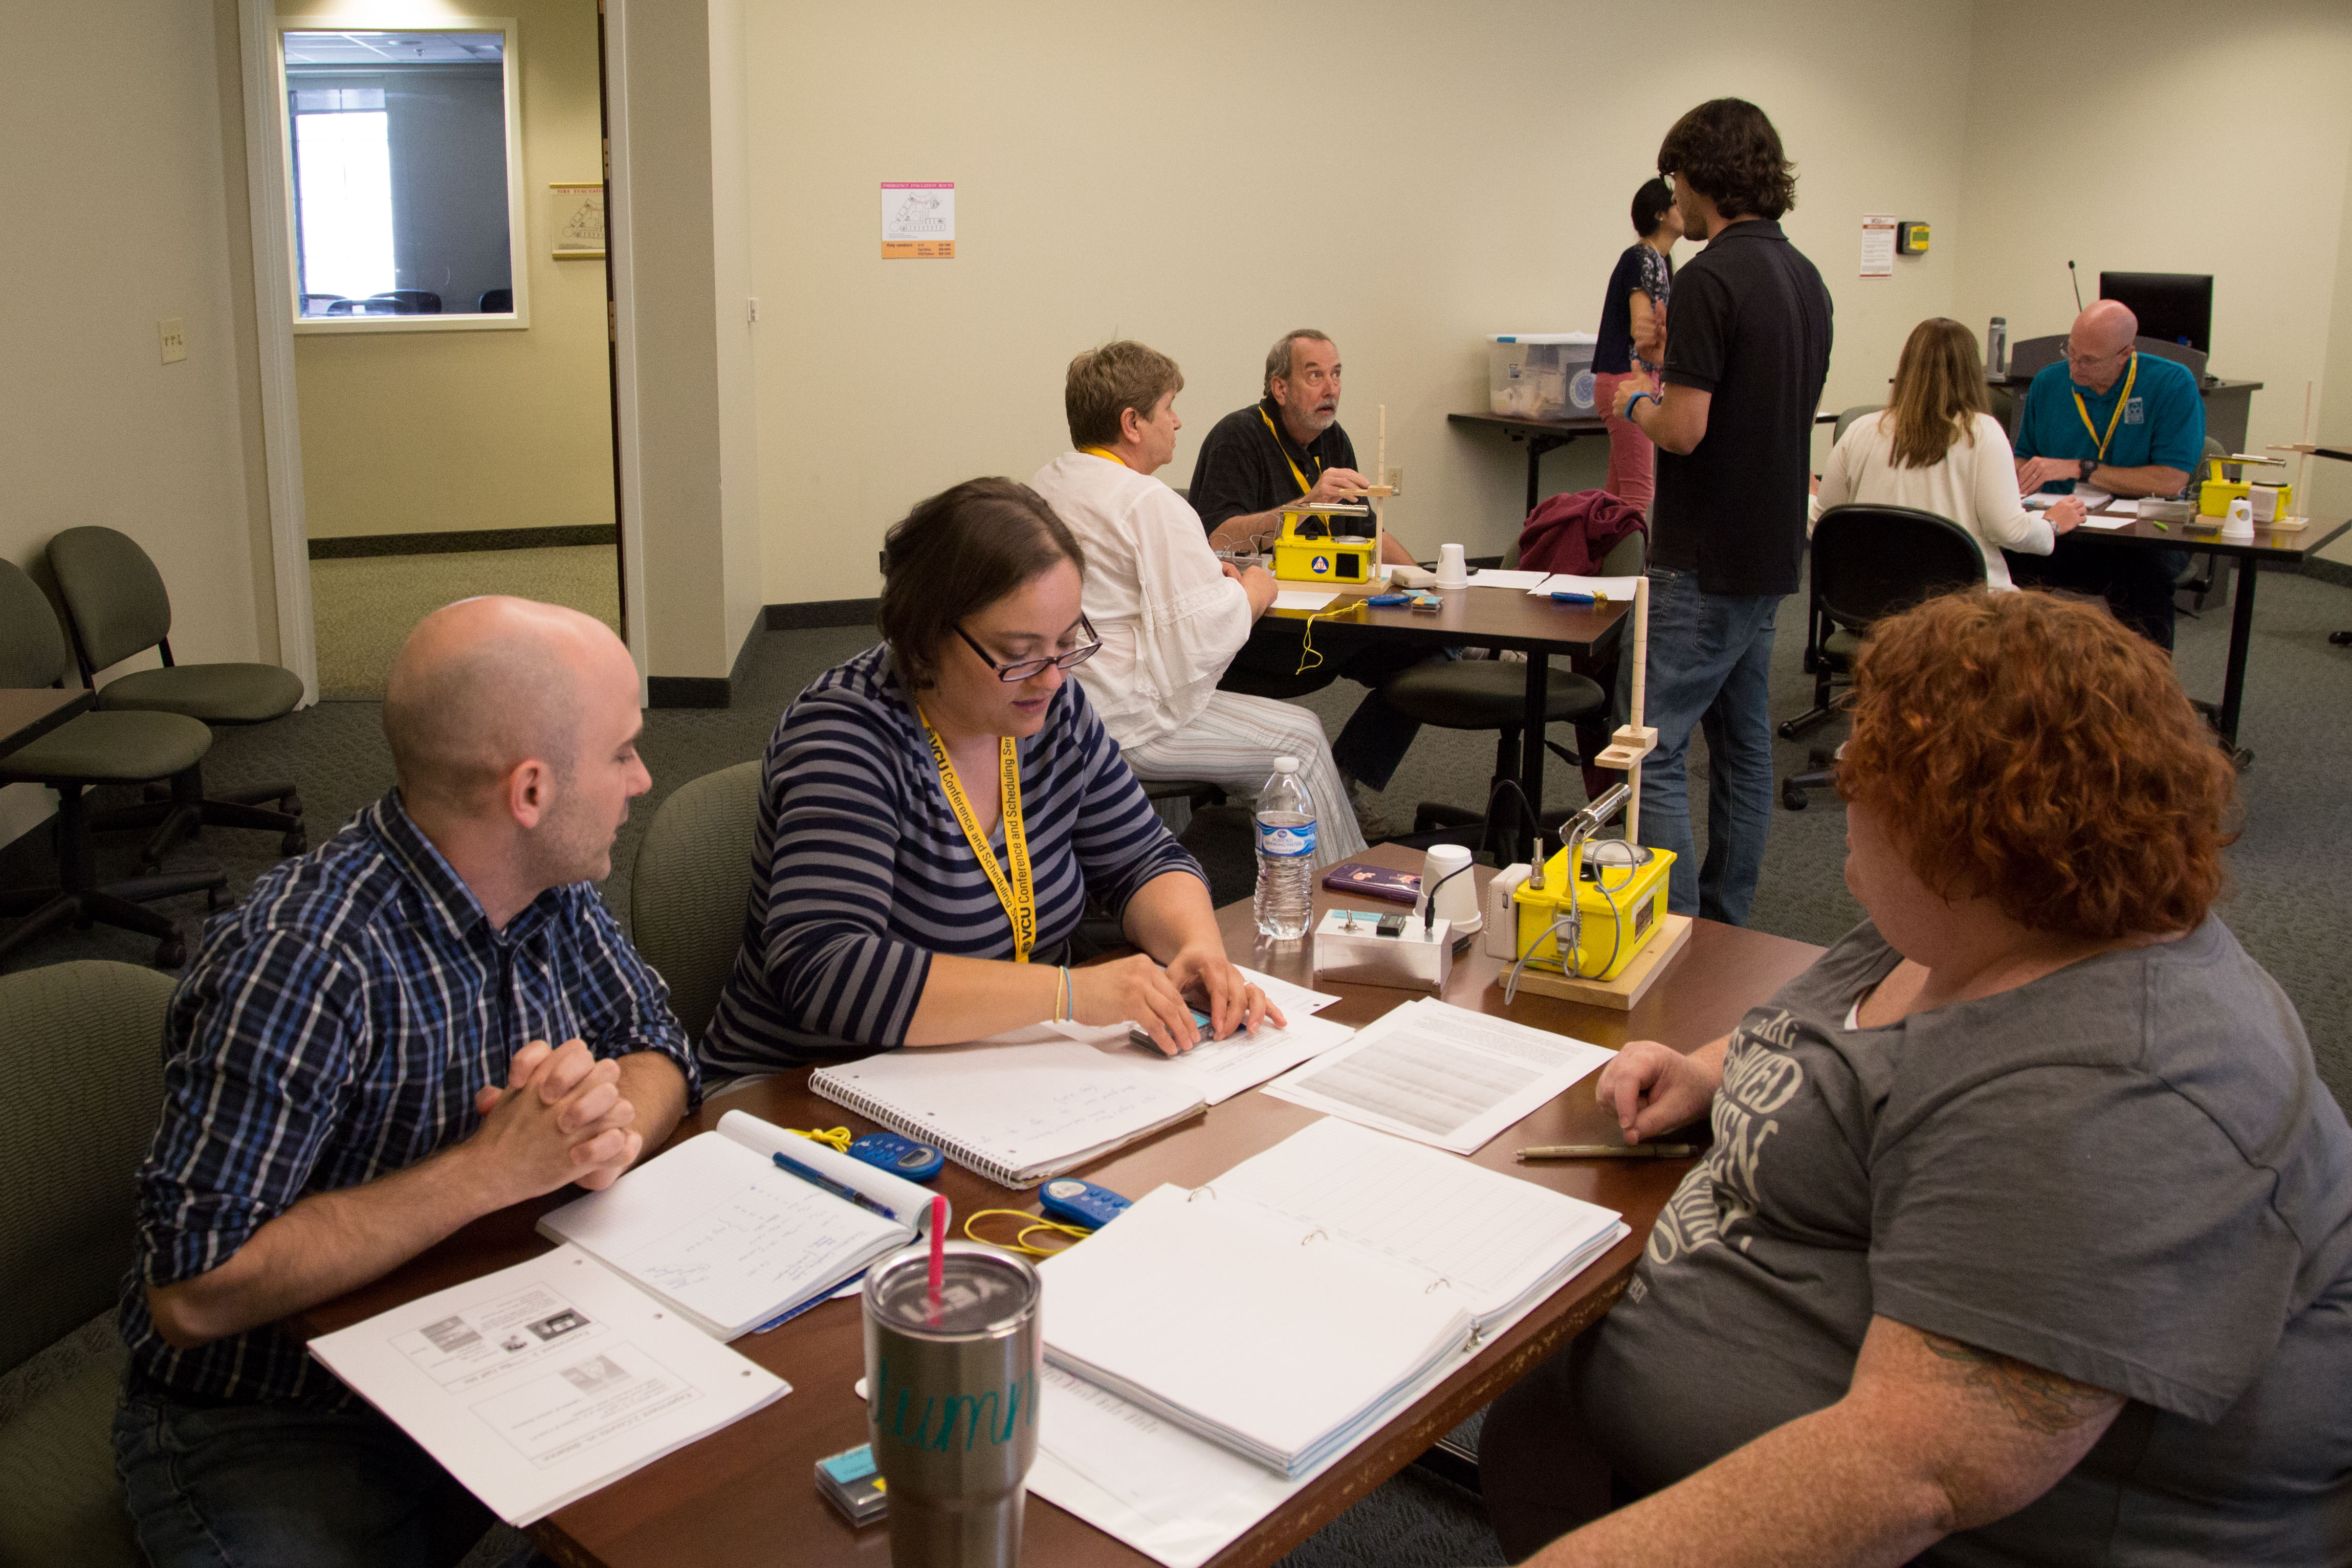 science-teachers-workshop-07-2016-5683_27712740314_o